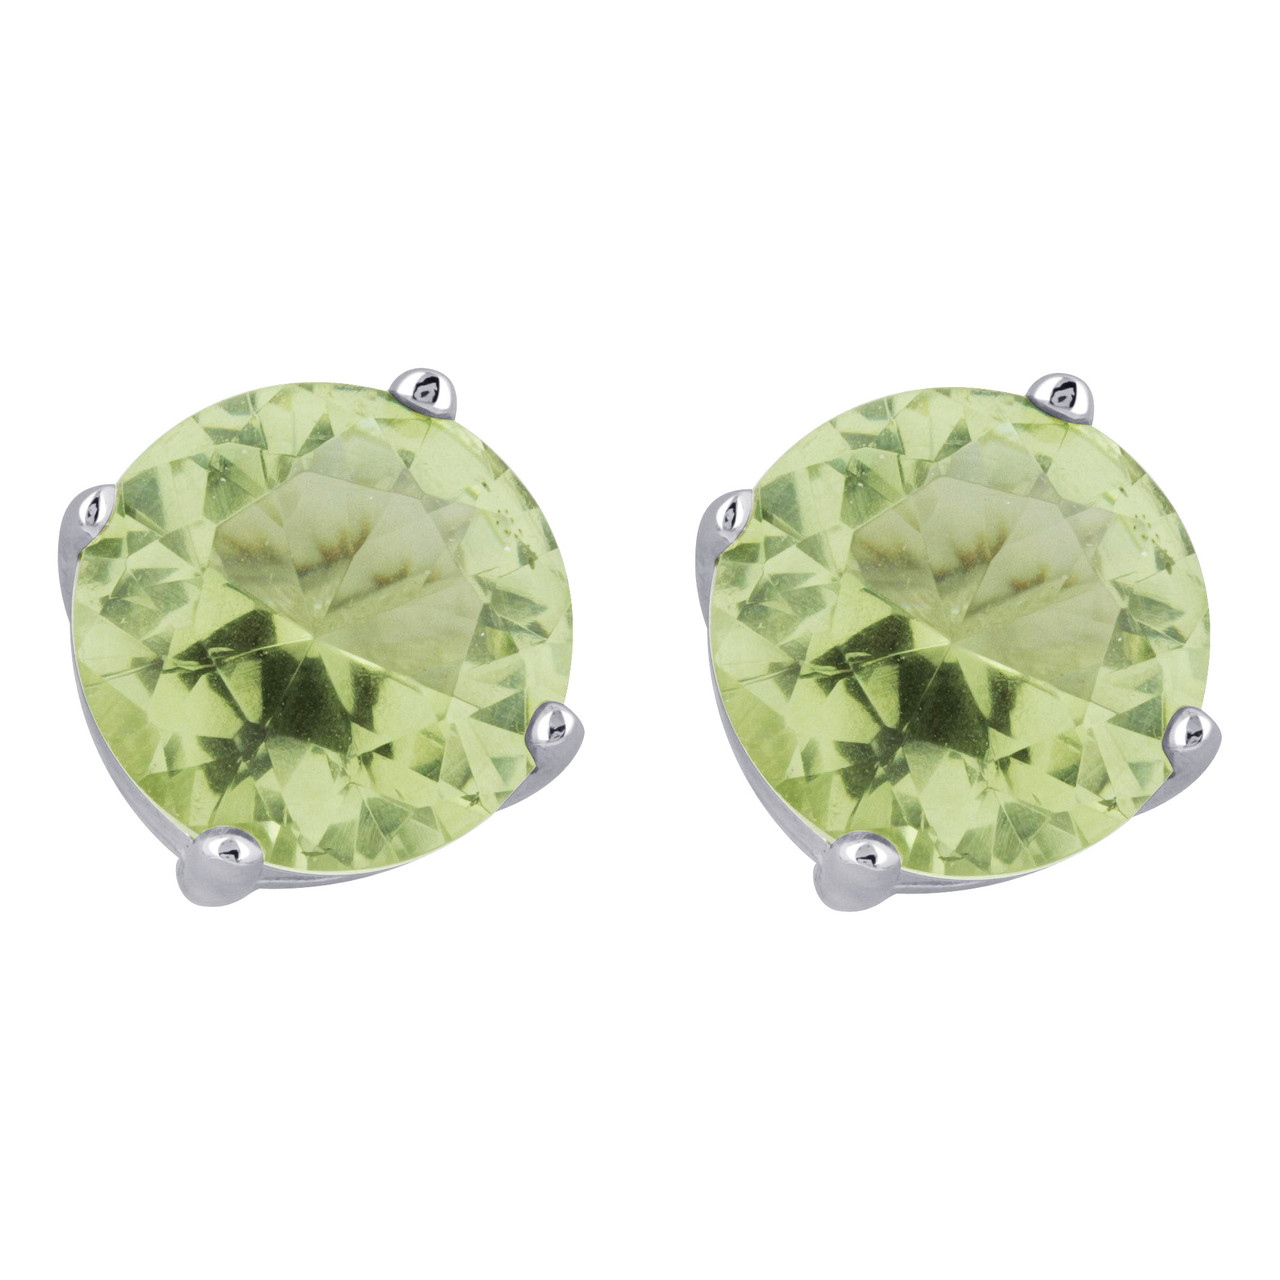 Round Green Cubic Zirconia Sterling Silver Stud Earring Pendant Set